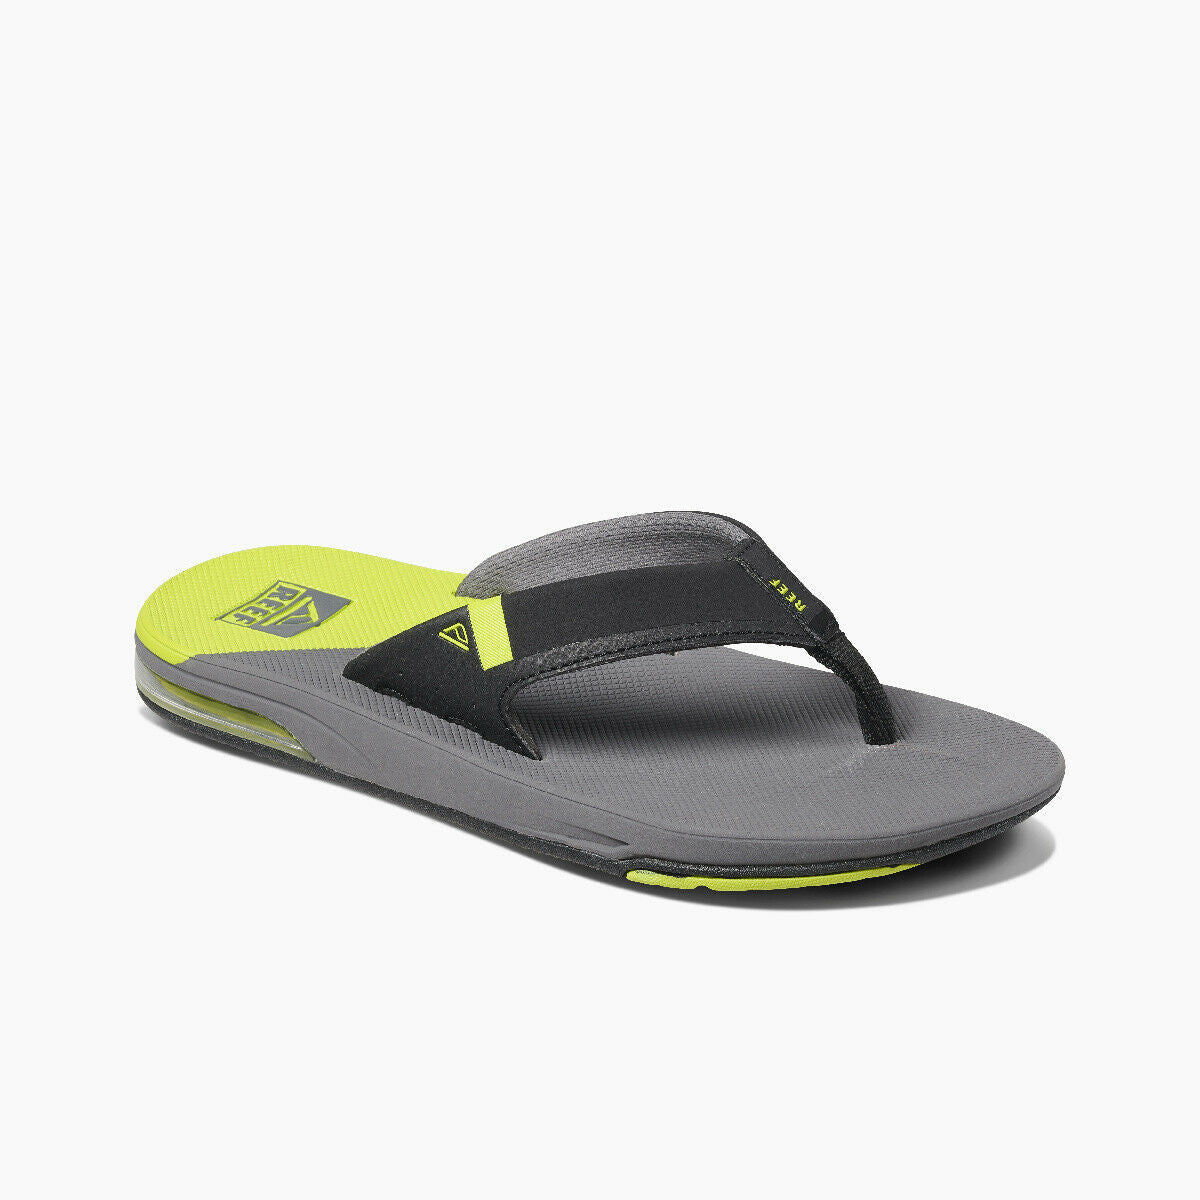 Reef Men's Fanning Low Flip Flops - Grey/Lime